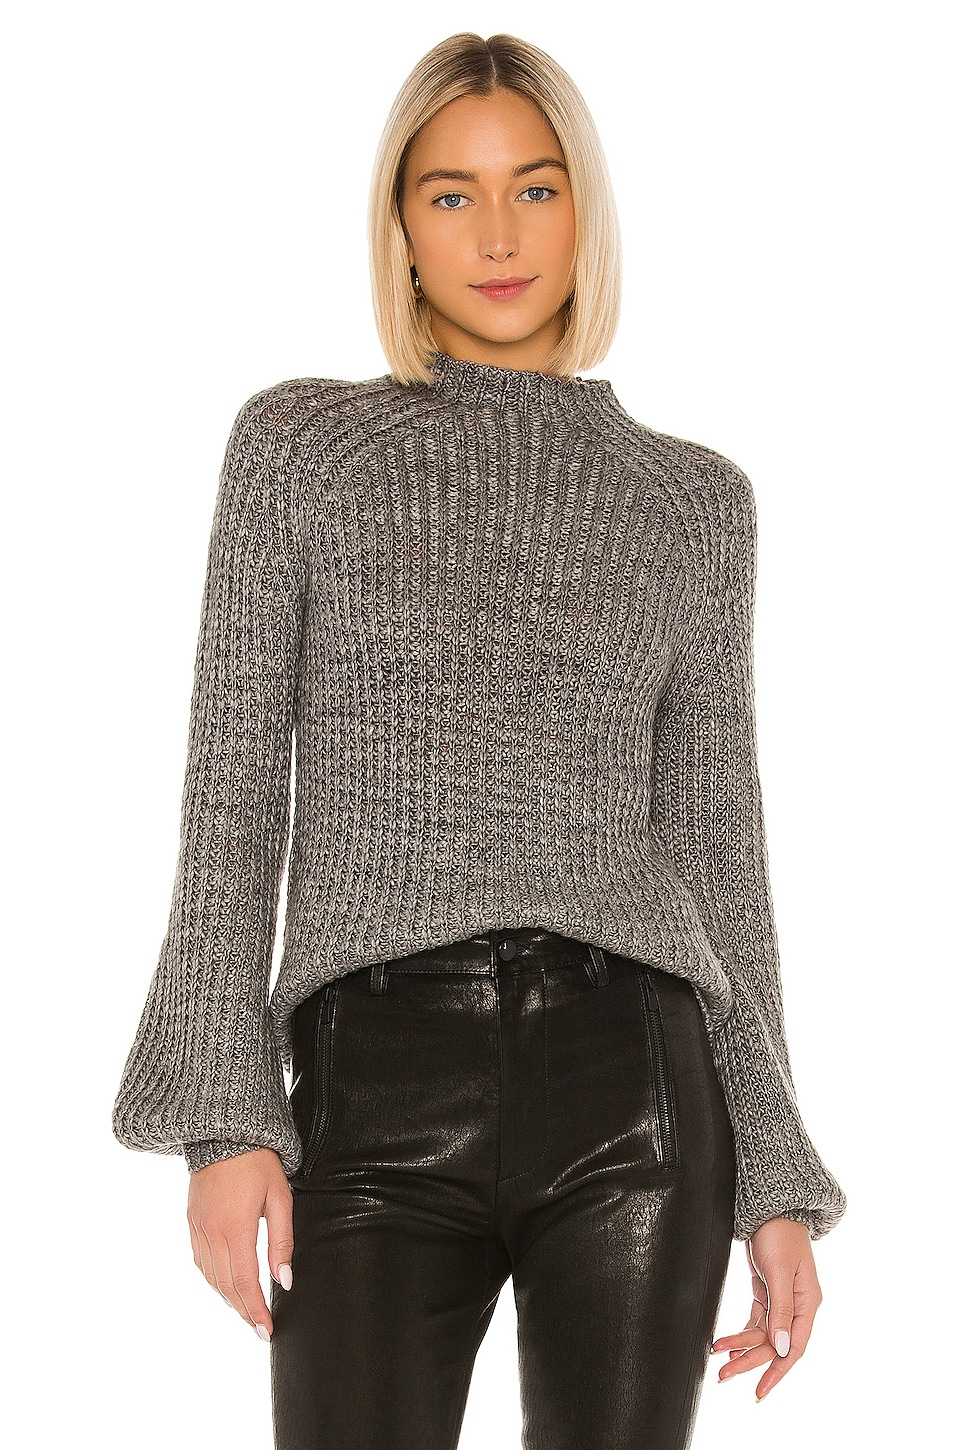 House of Harlow 1960 x REVOLVE Dillin Sweater in Grey